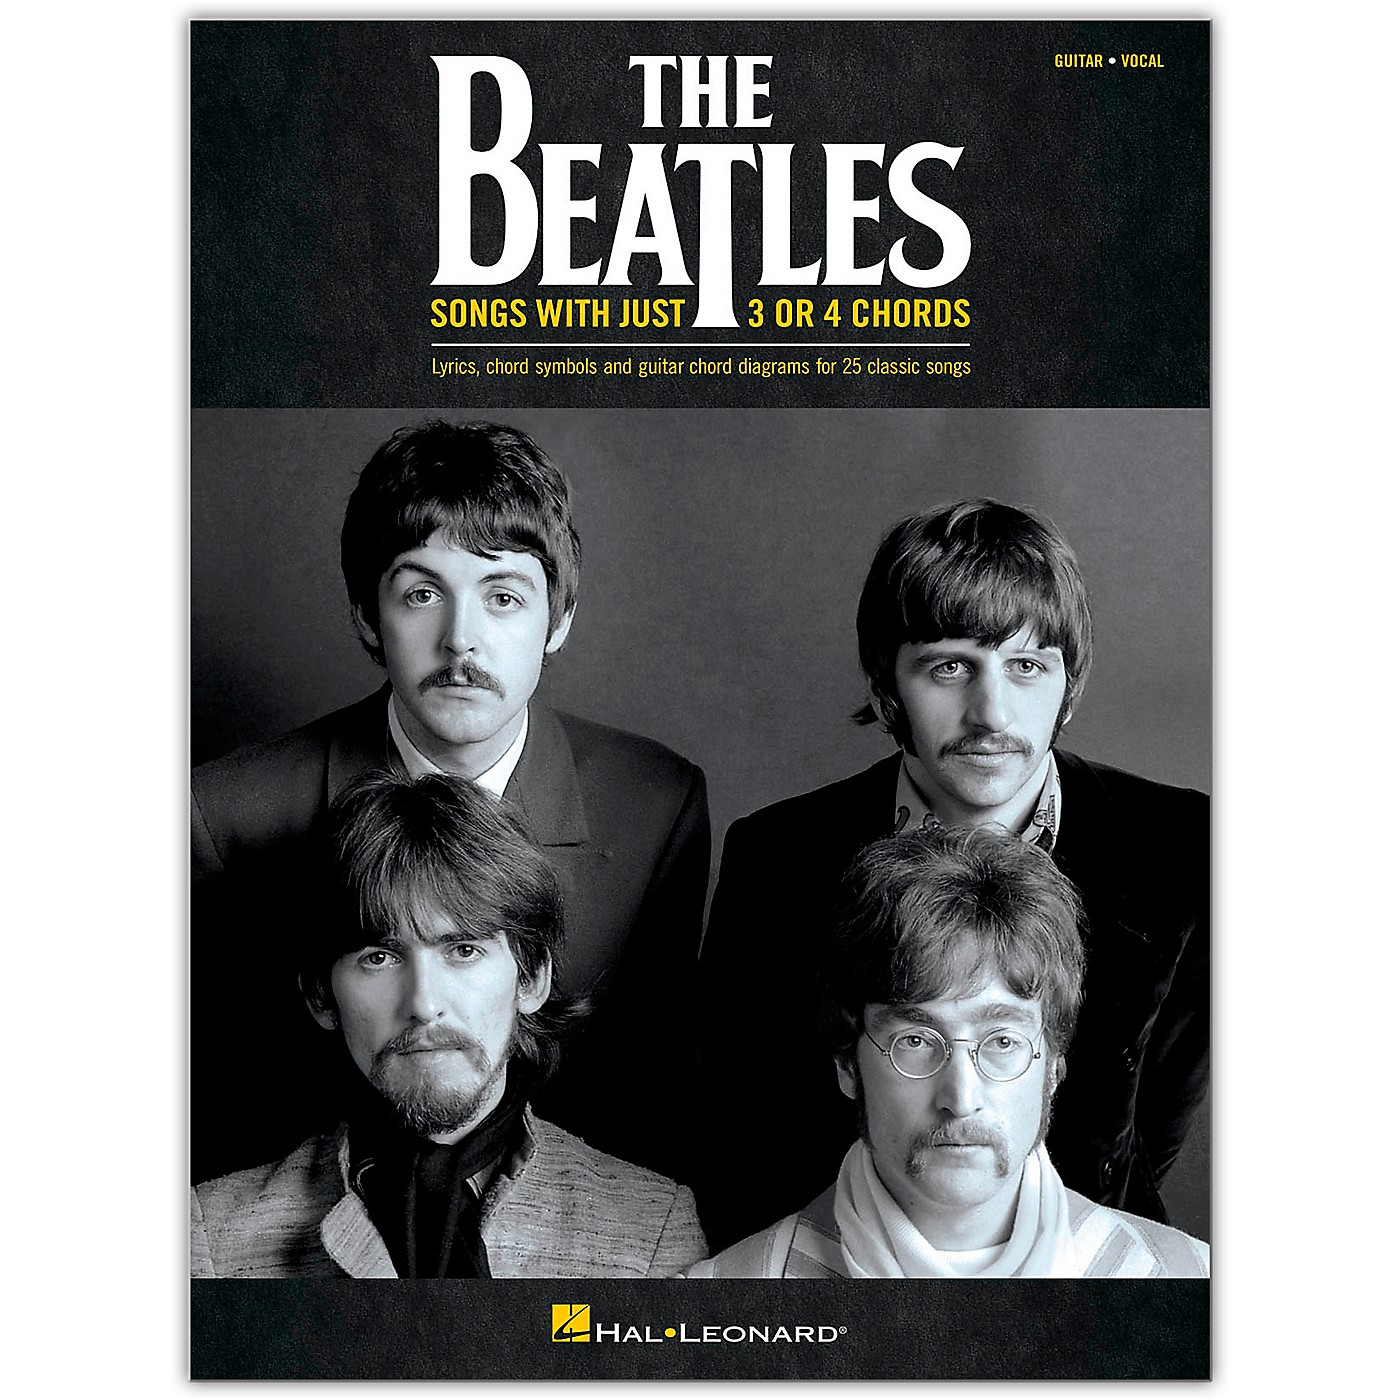 Hal Leonard The Beatles - Songs with Just 3 or 4 Chords Guitar Collection thumbnail